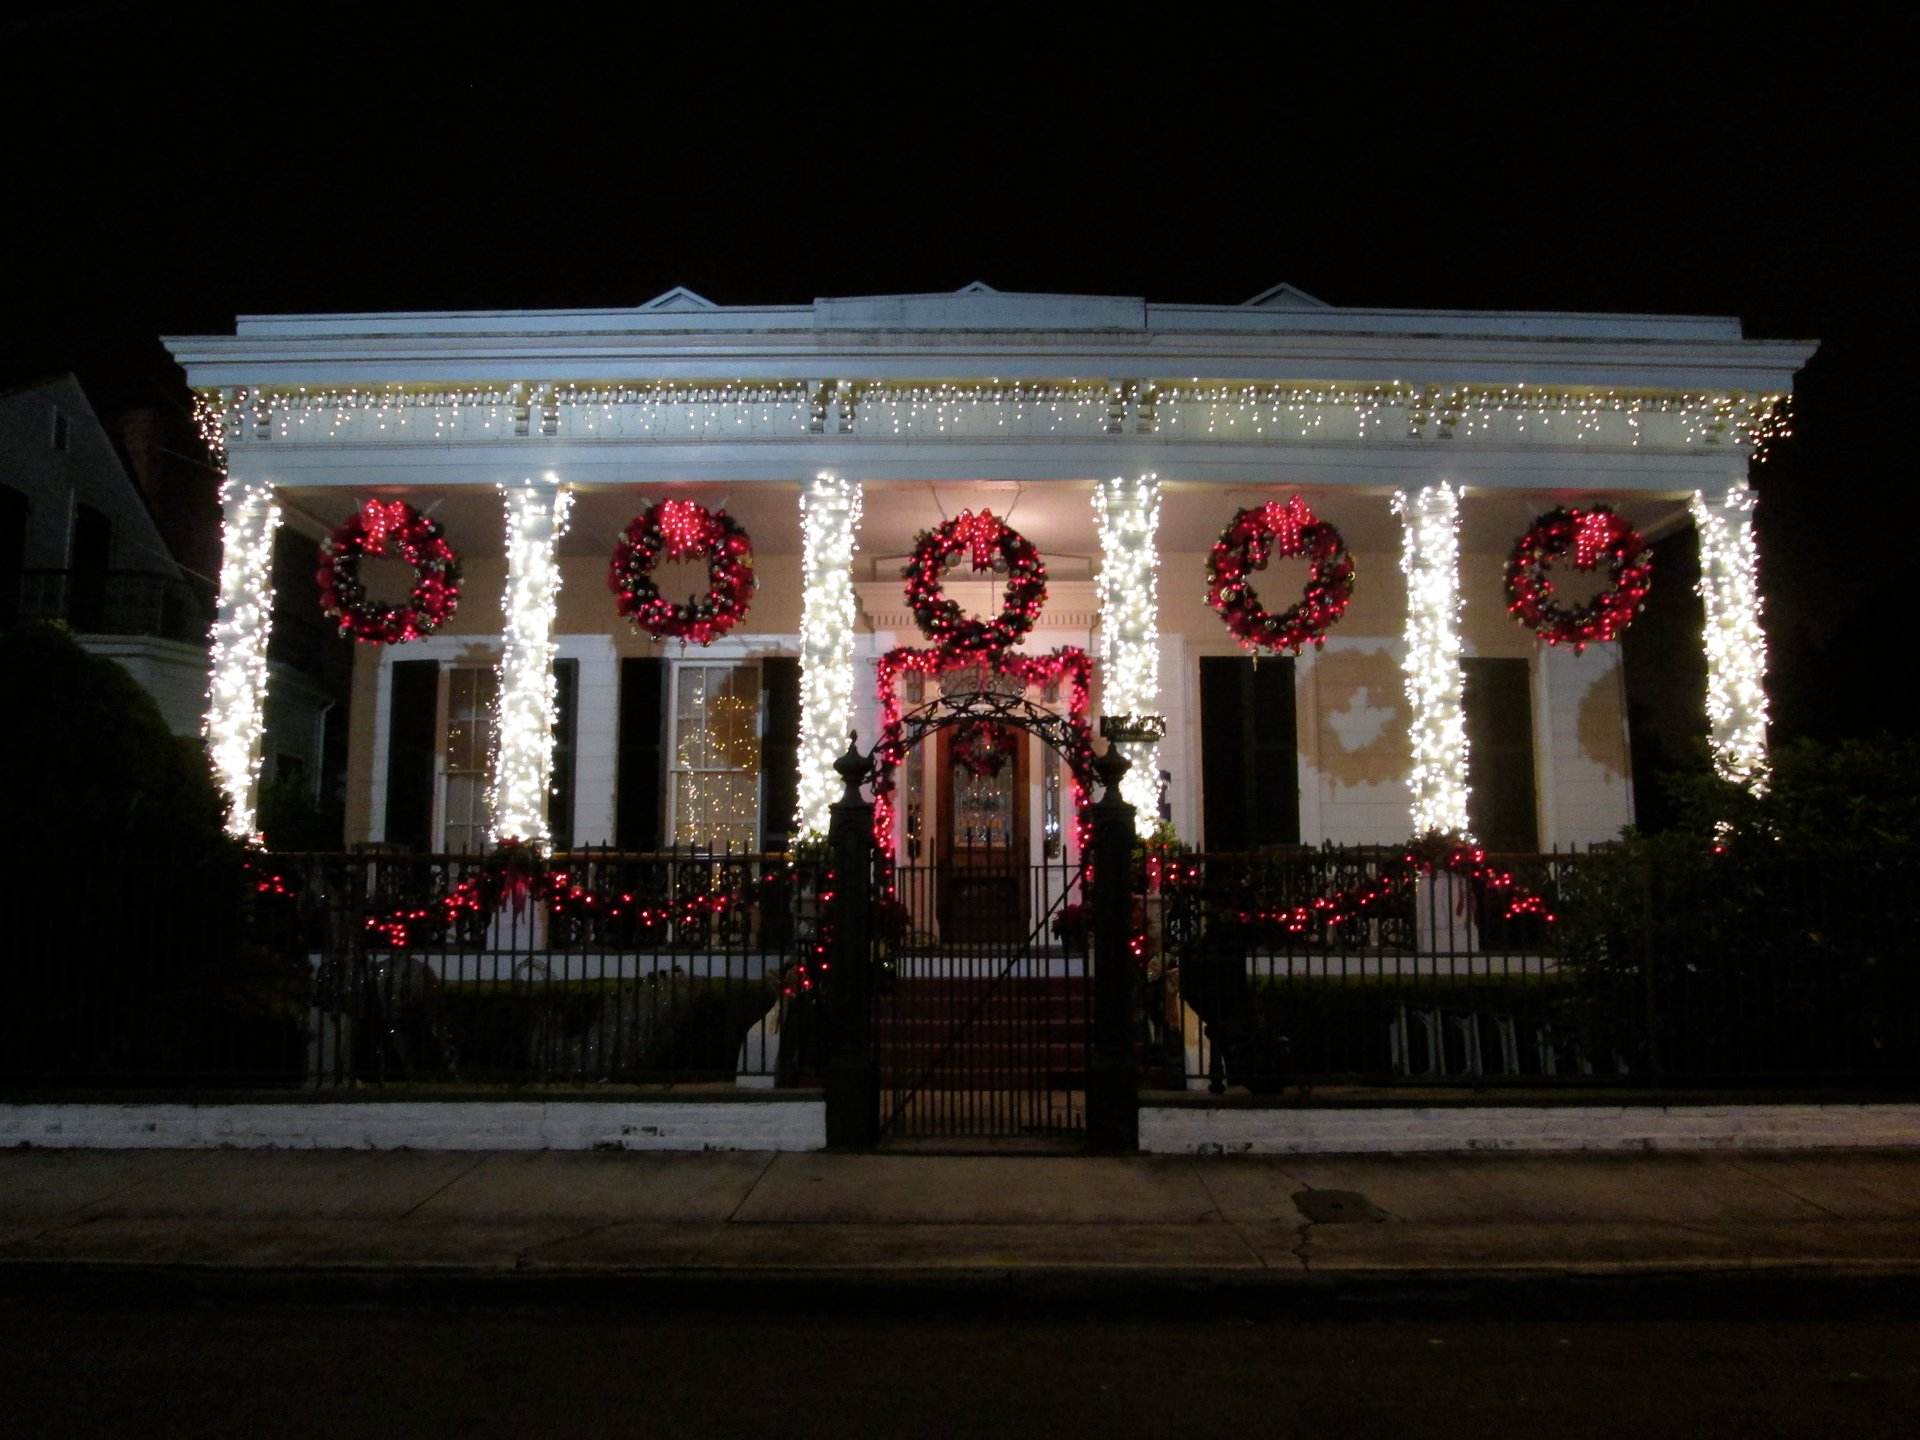 NOLA Holiday Lights in New Orleans 2020 - Best Time